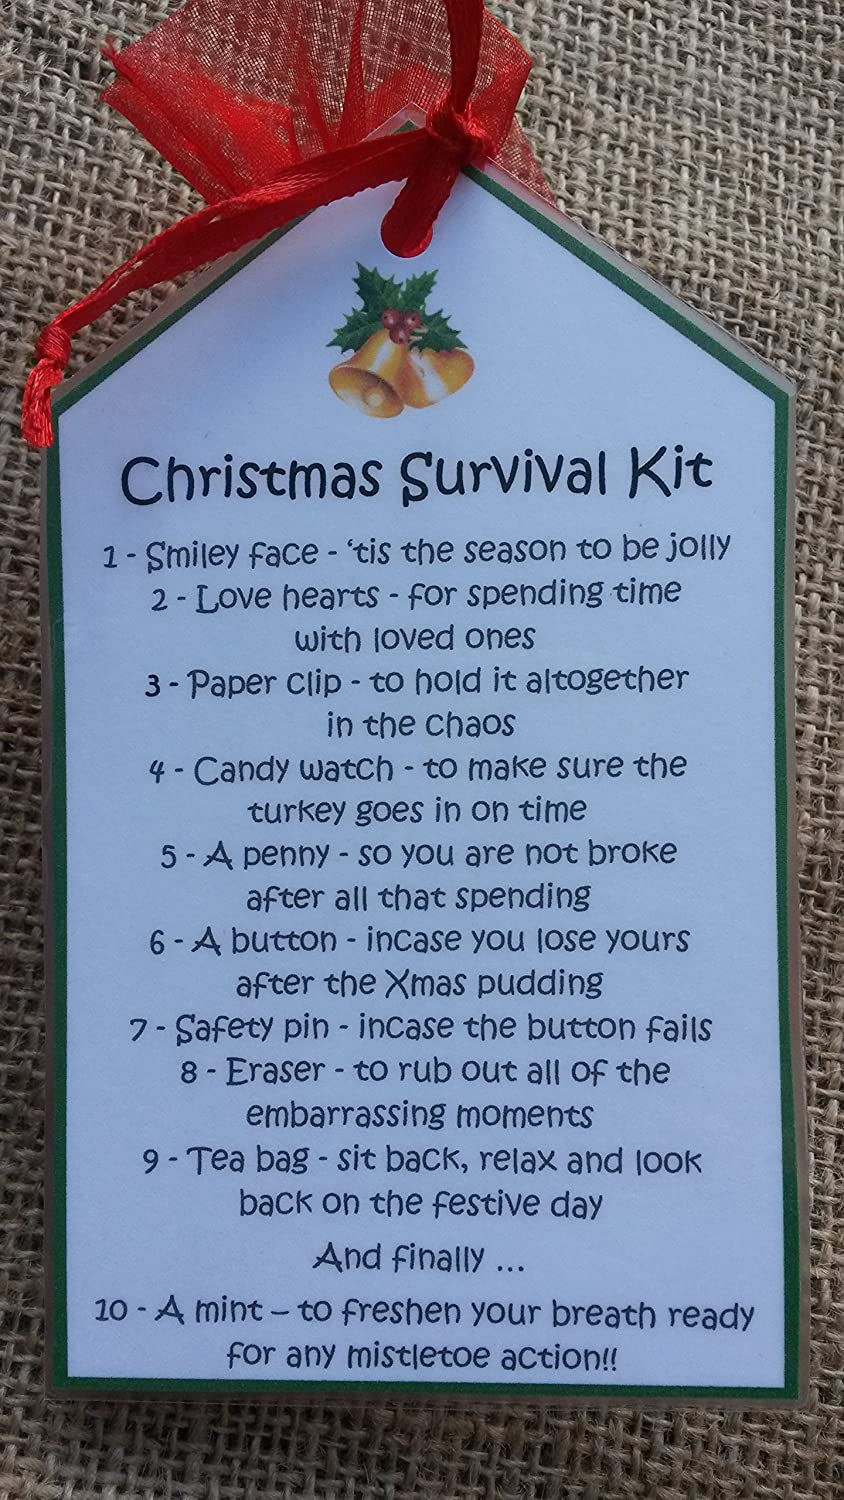 Christmas novelty Survival Kit - Ideal for adults - Perfect fun and unique stocking filler or secret santa present! M&B Stix Pix